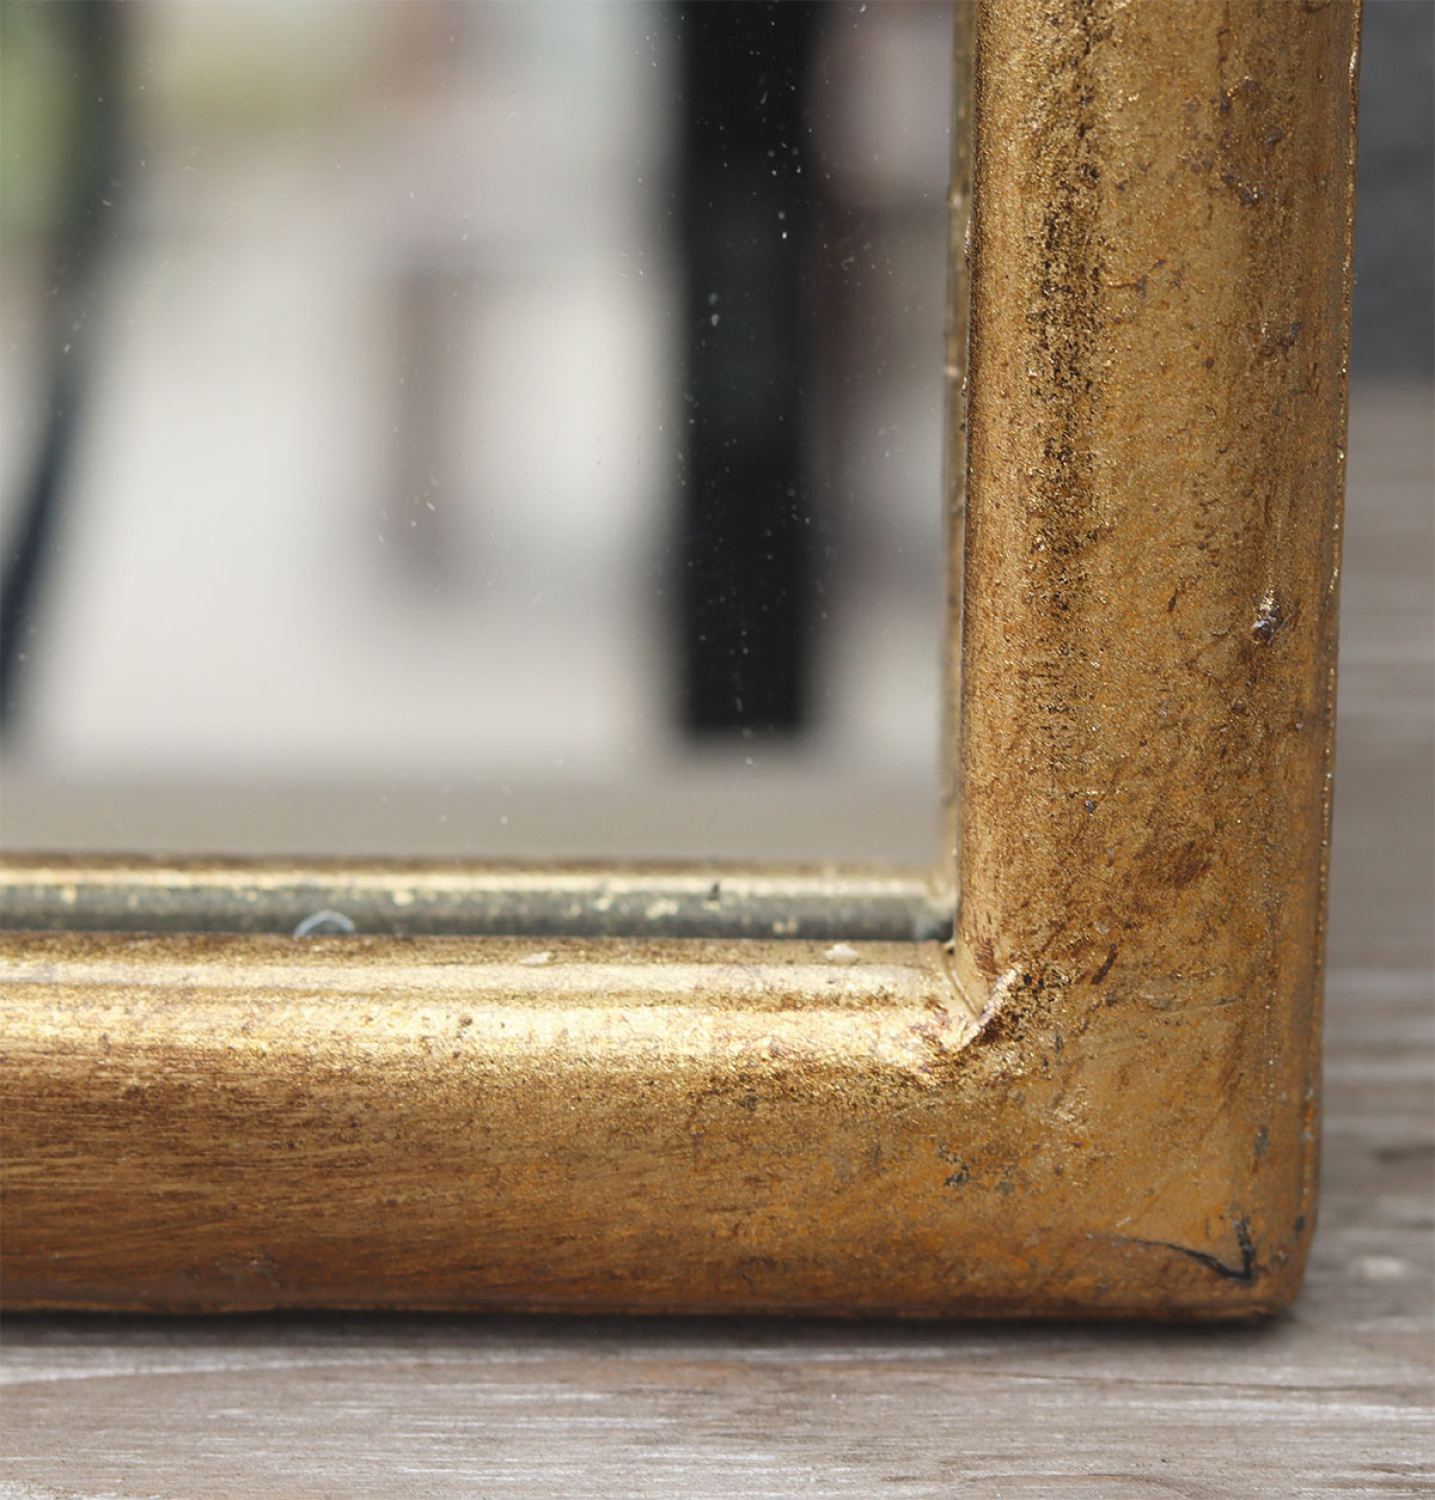 Paris Loft Full Length Body Mirror For Floor Or Wall - Arched Metal Frame - Slim Long Mirror For Leaning - Antiqued Gold Leaf Finish, 50